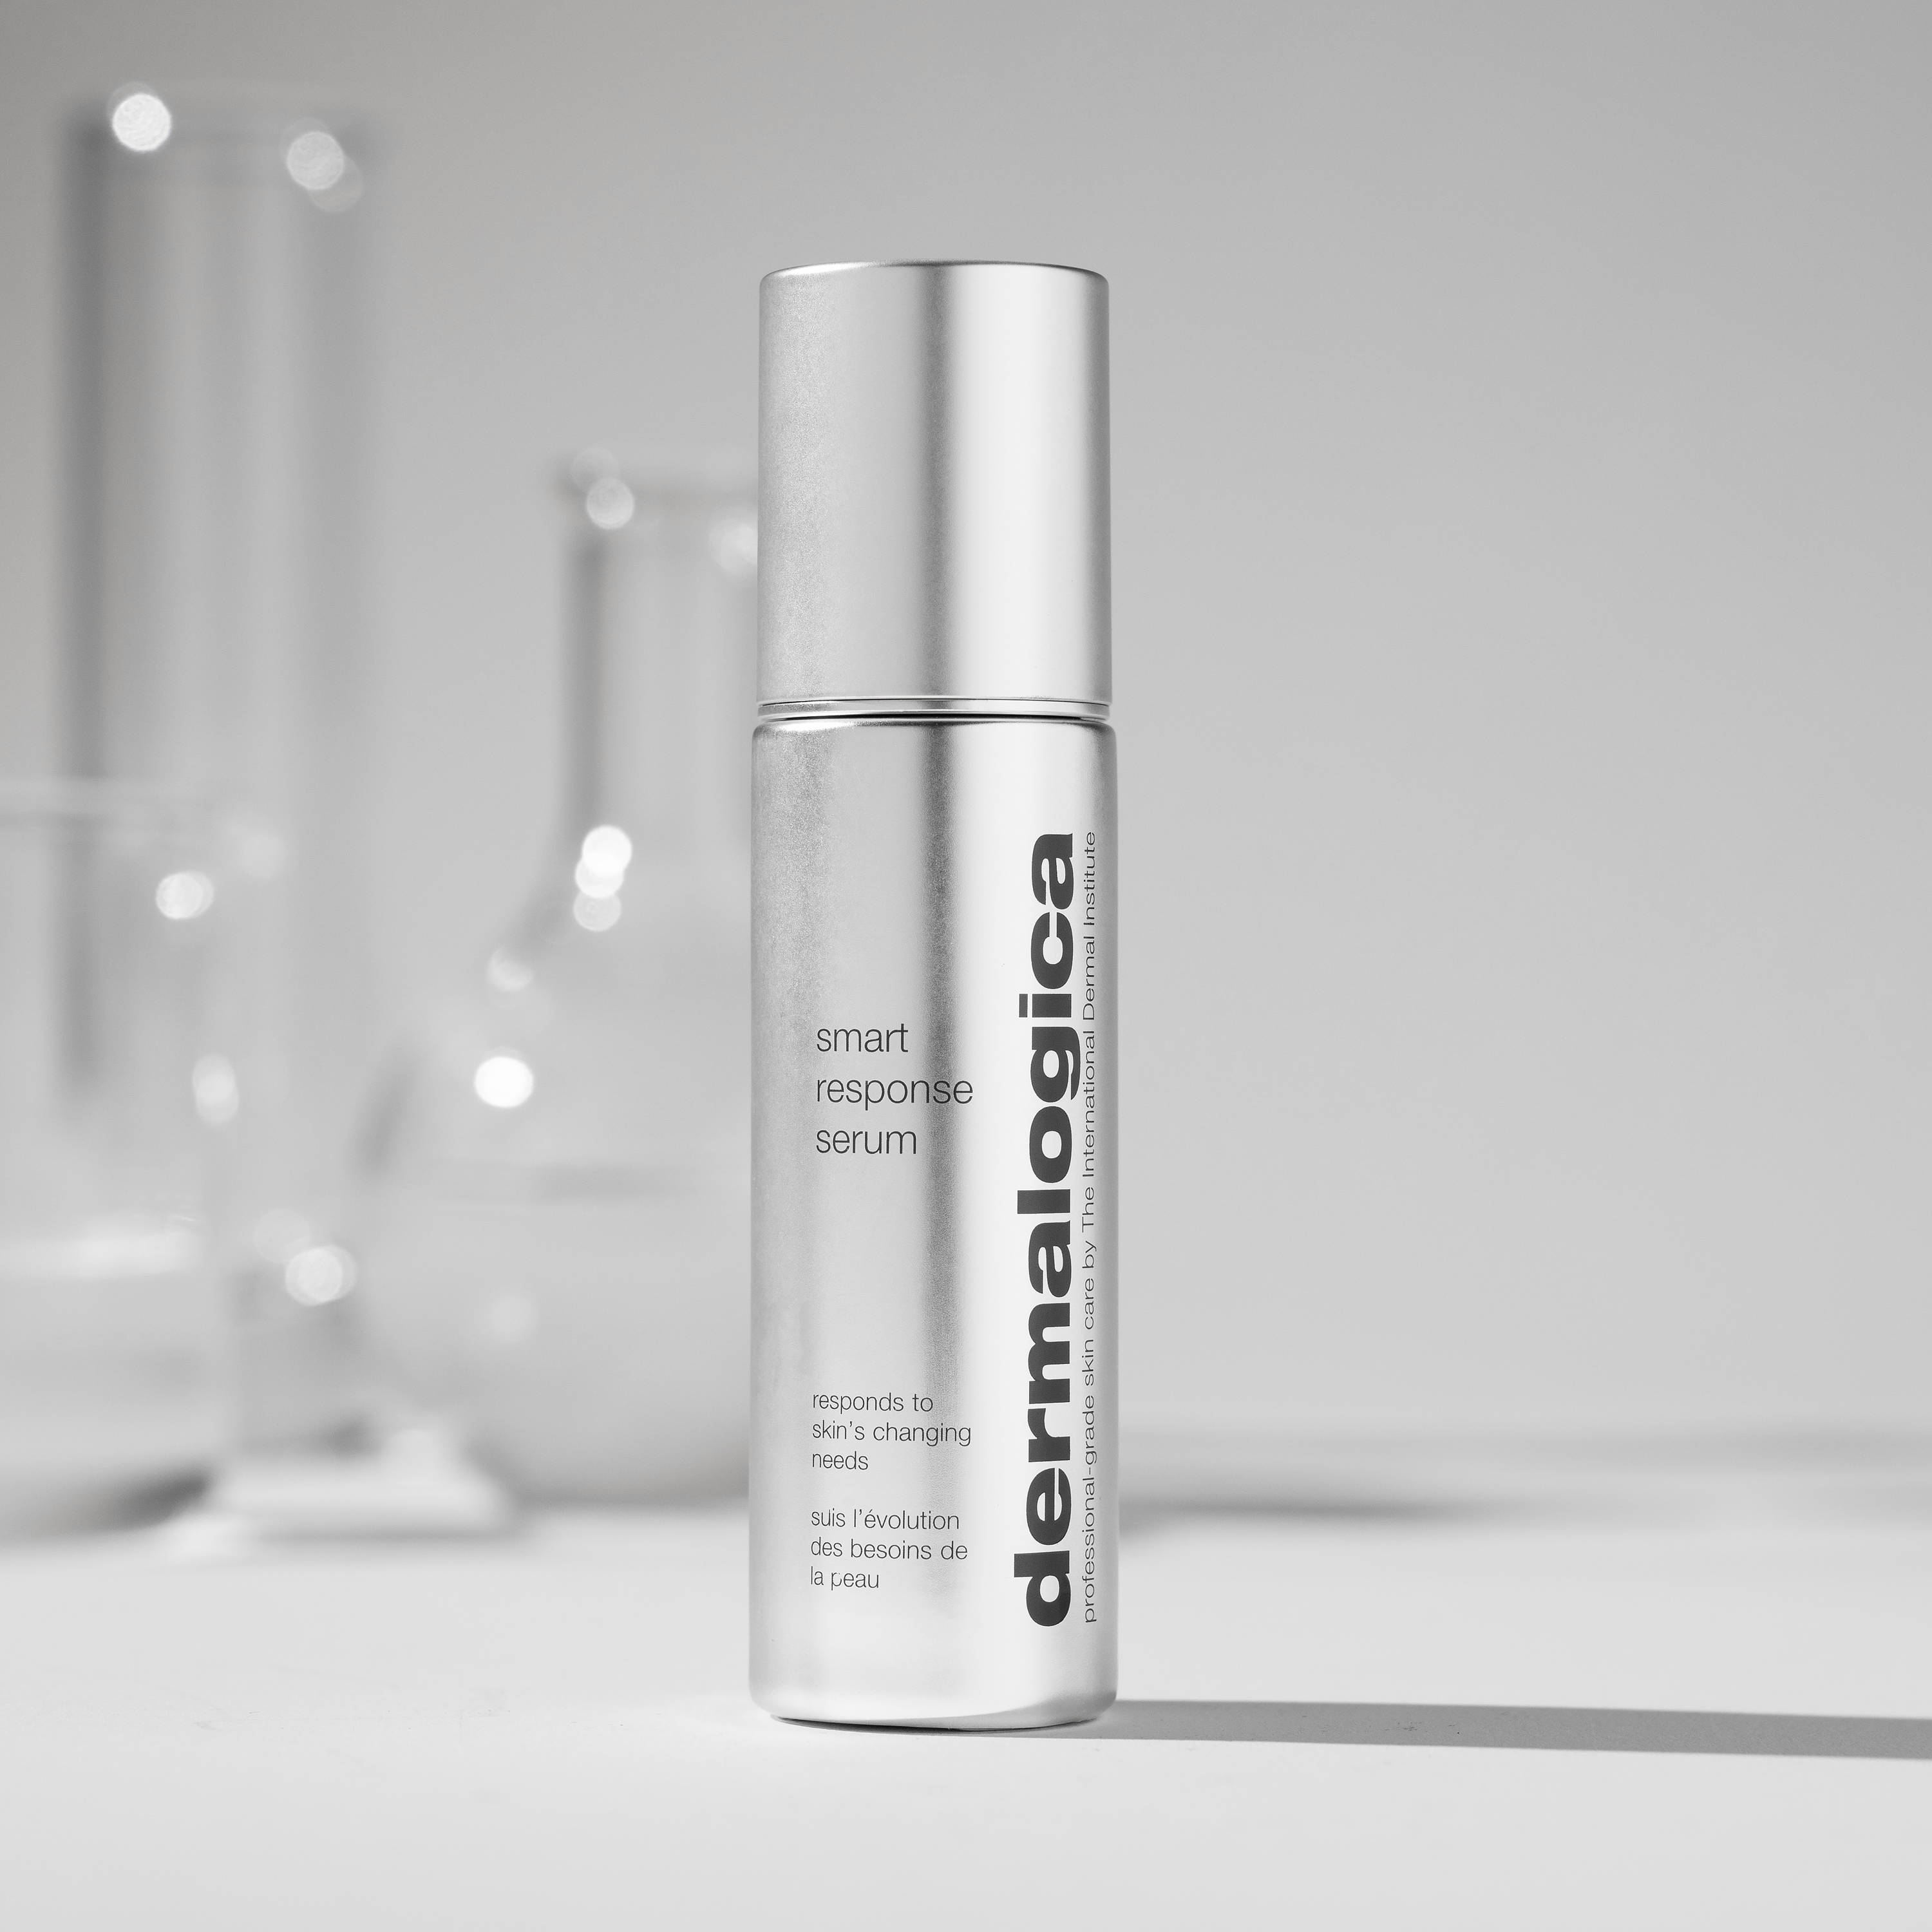 Dermalogica Smart Response Serum - Delivers what the skin needs, when and where it needs it.